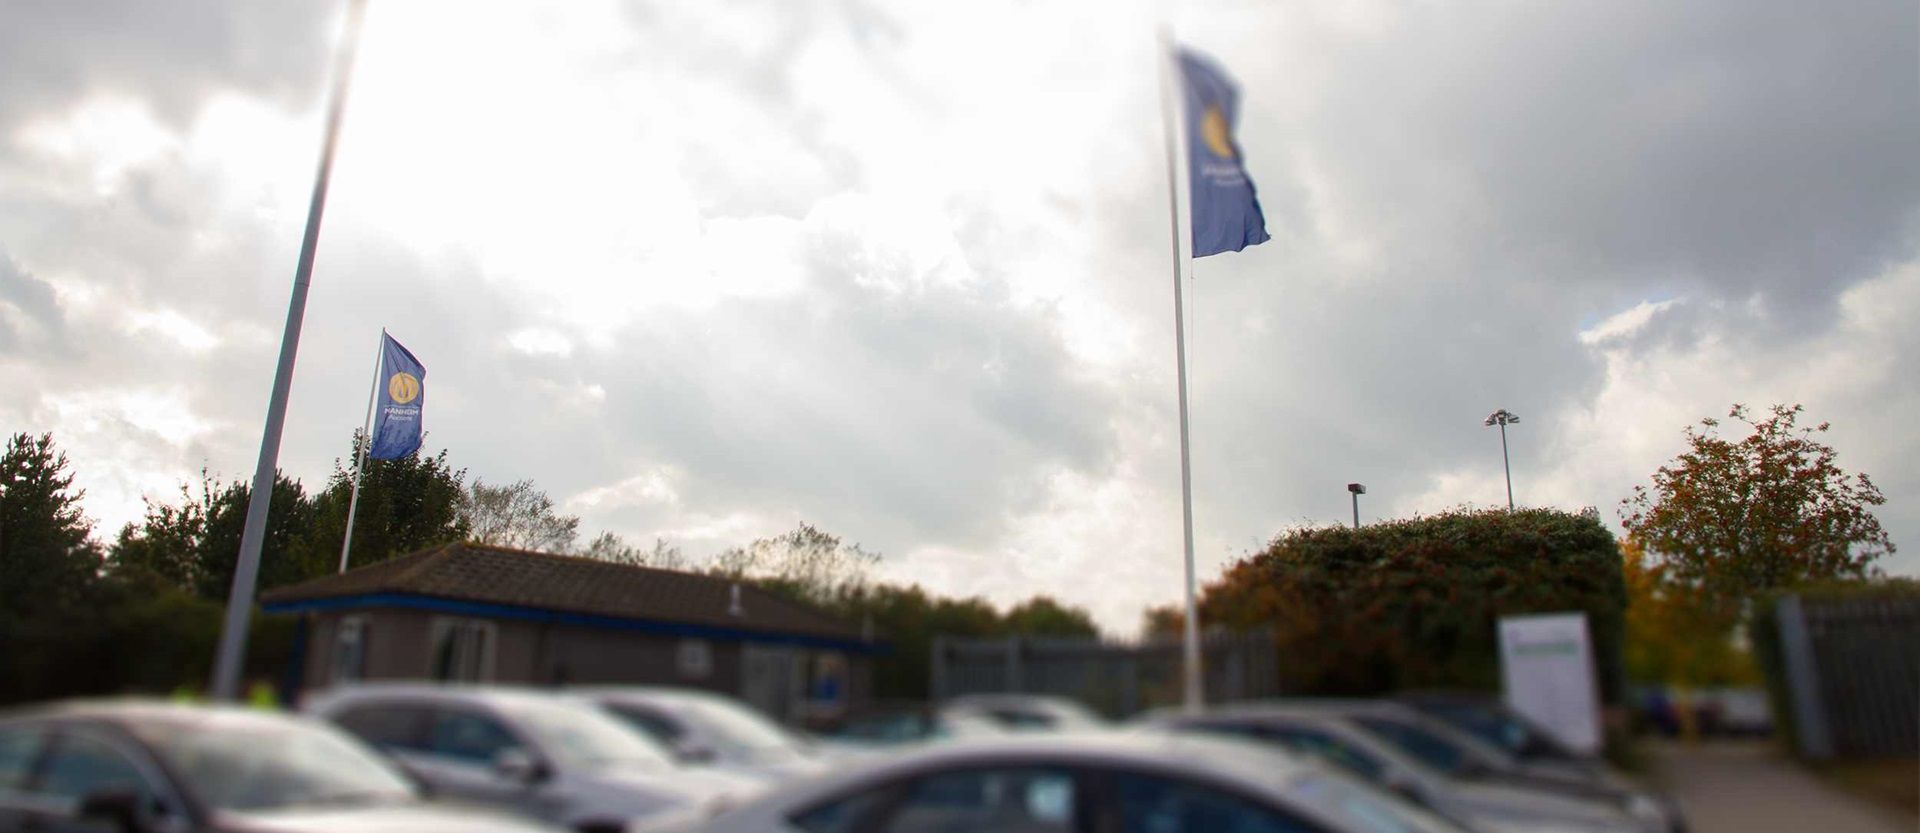 Cars outside a Manheim auction centre